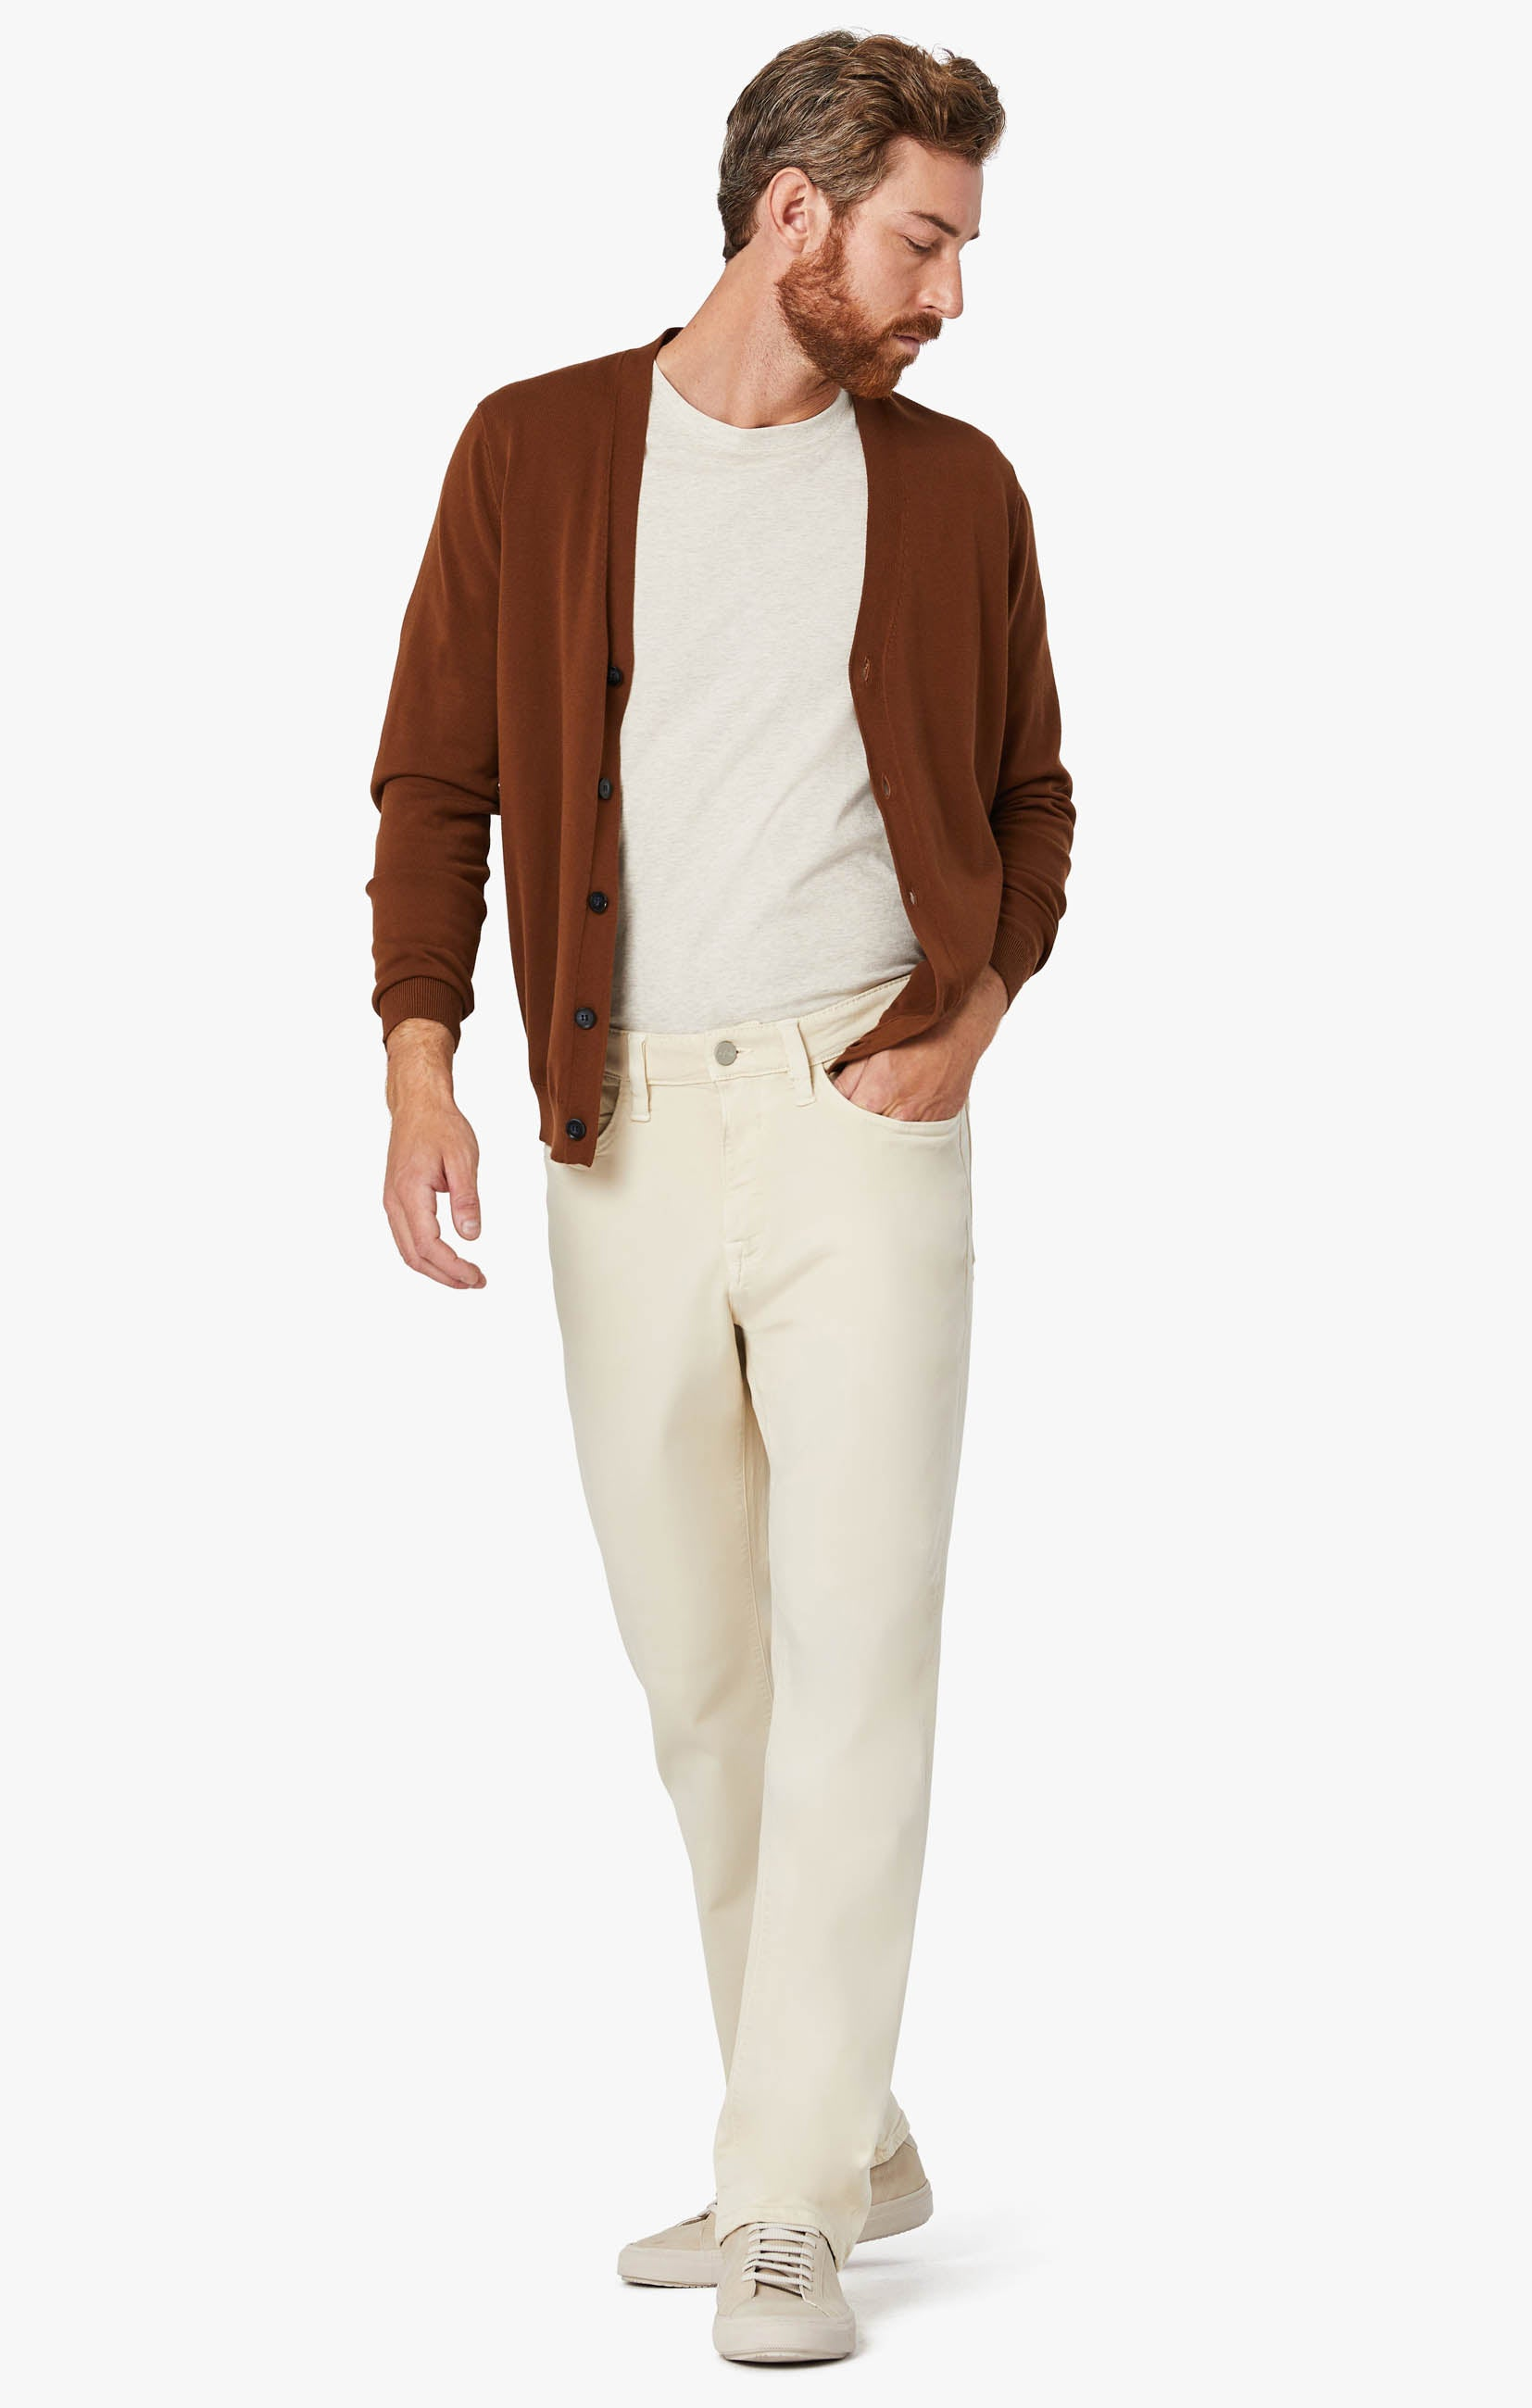 Charisma Relaxed Straight Pants In Natural Comfort Image 1